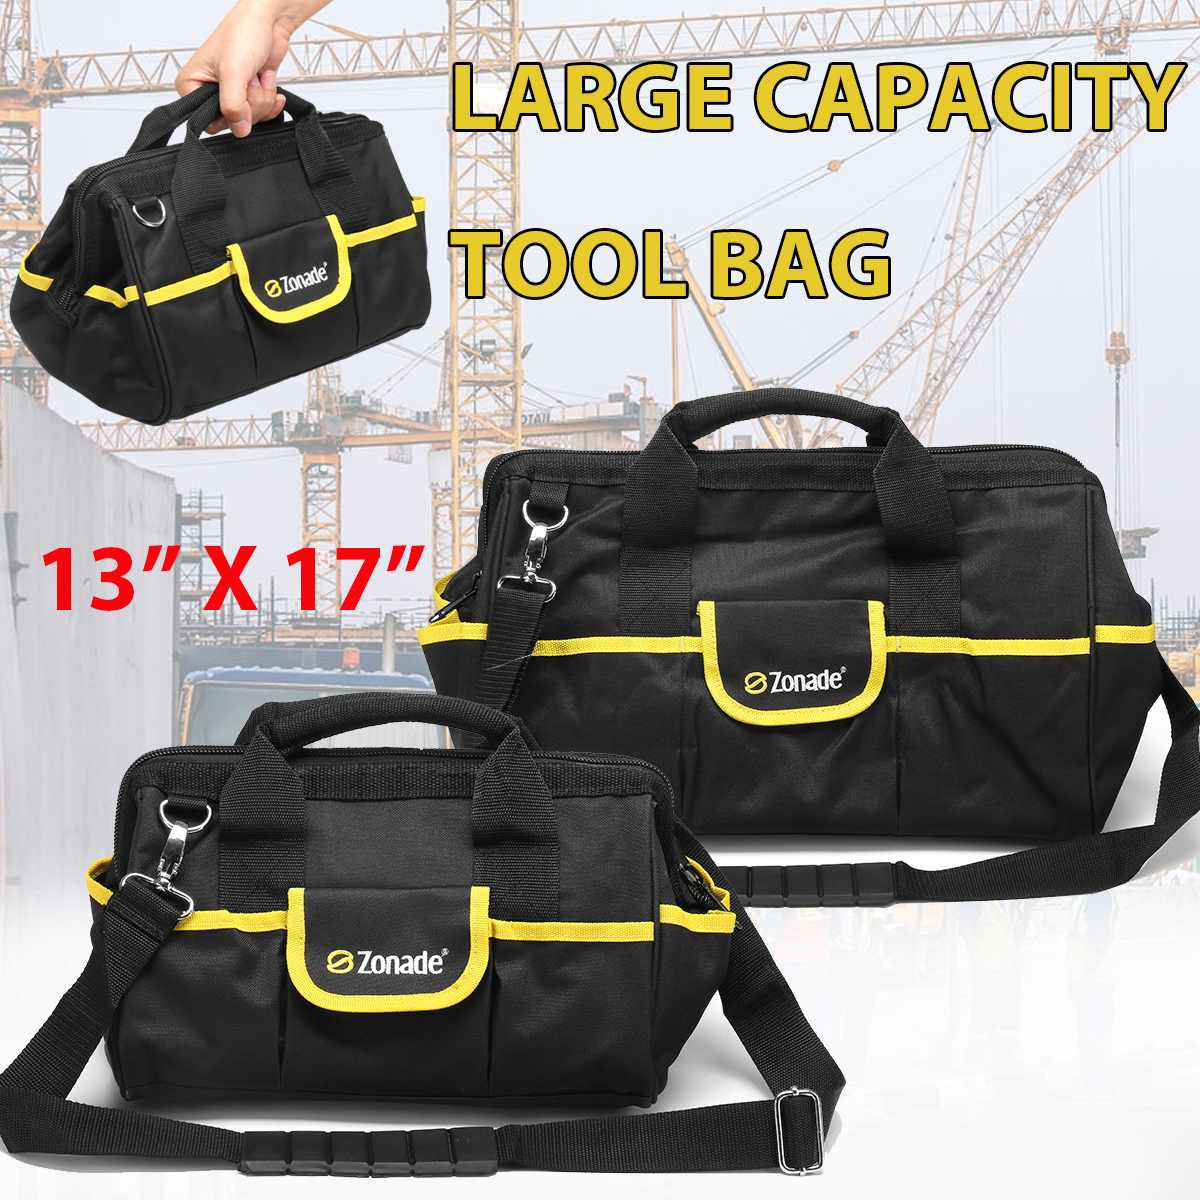 13 inch 17 inch Oxford Cloth Tool Bag Double Thickness Waterproof Toolbag Multi-function Drill Electric Screwdriver Tool Pouch13 inch 17 inch Oxford Cloth Tool Bag Double Thickness Waterproof Toolbag Multi-function Drill Electric Screwdriver Tool Pouch